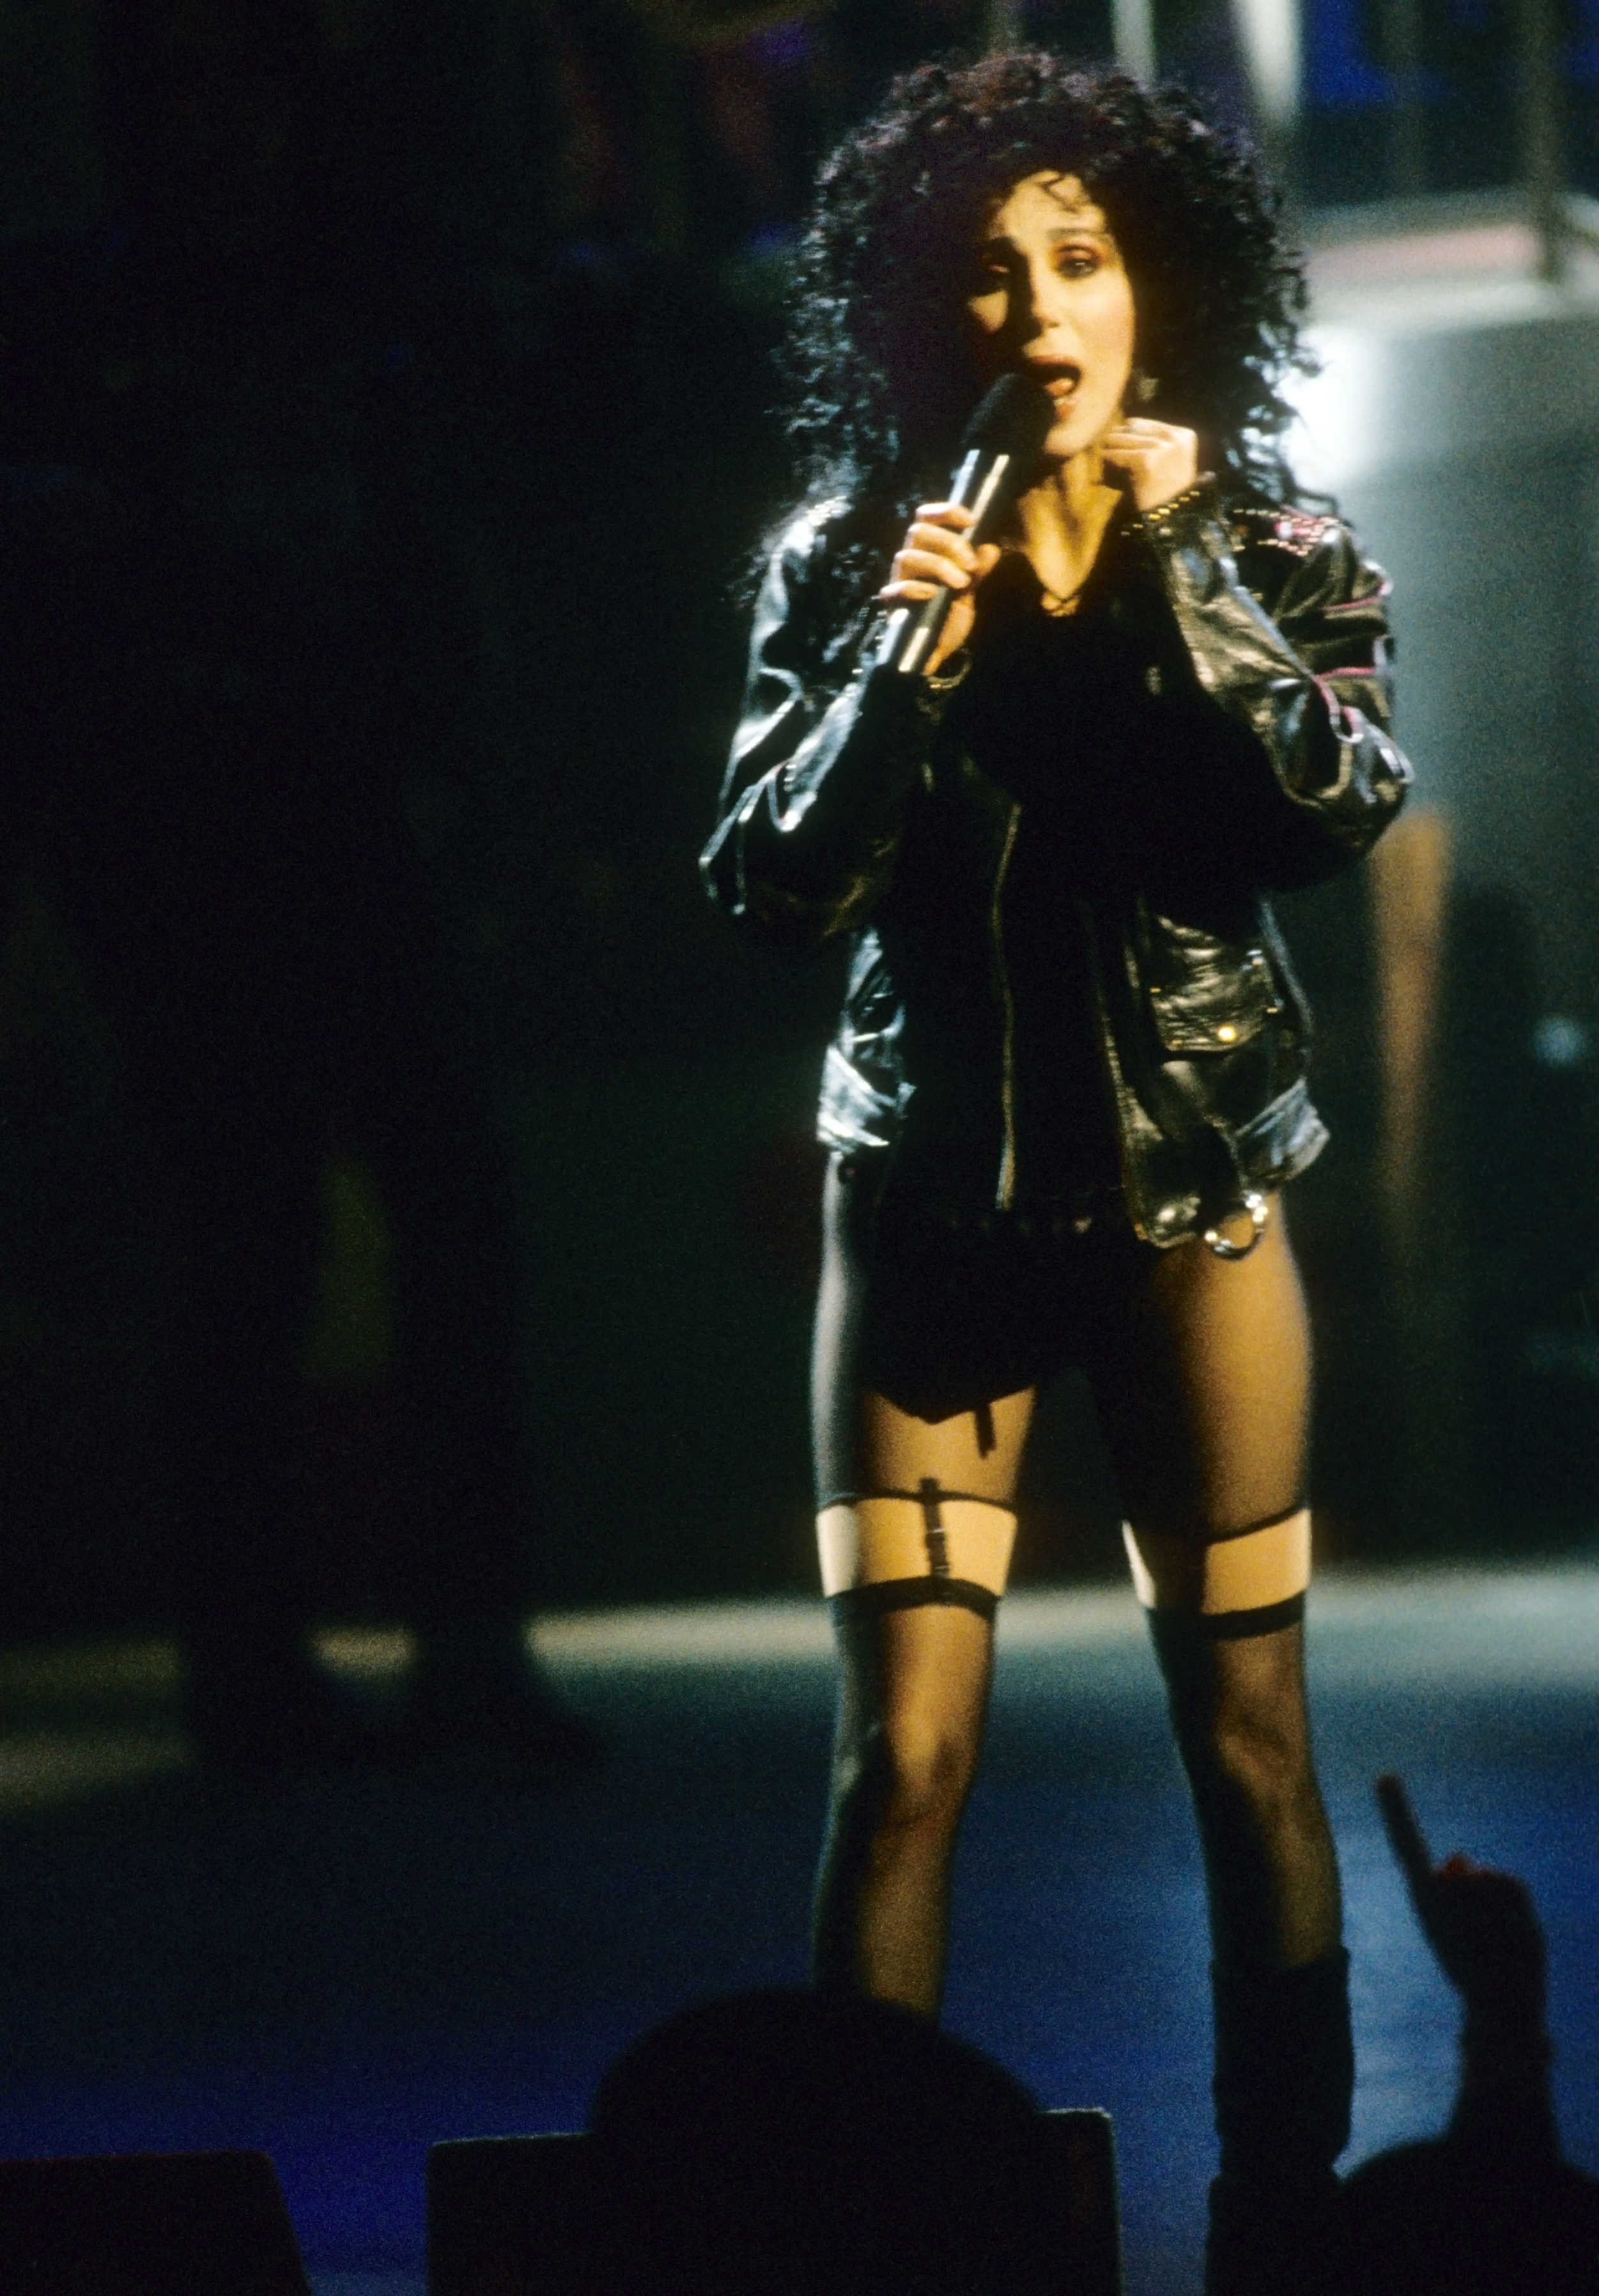 """Cher Through The Years - Cher released her """"If I Could Turn Back Time"""" music video, in which she famously performed aboard a battleship for members of the Navy."""